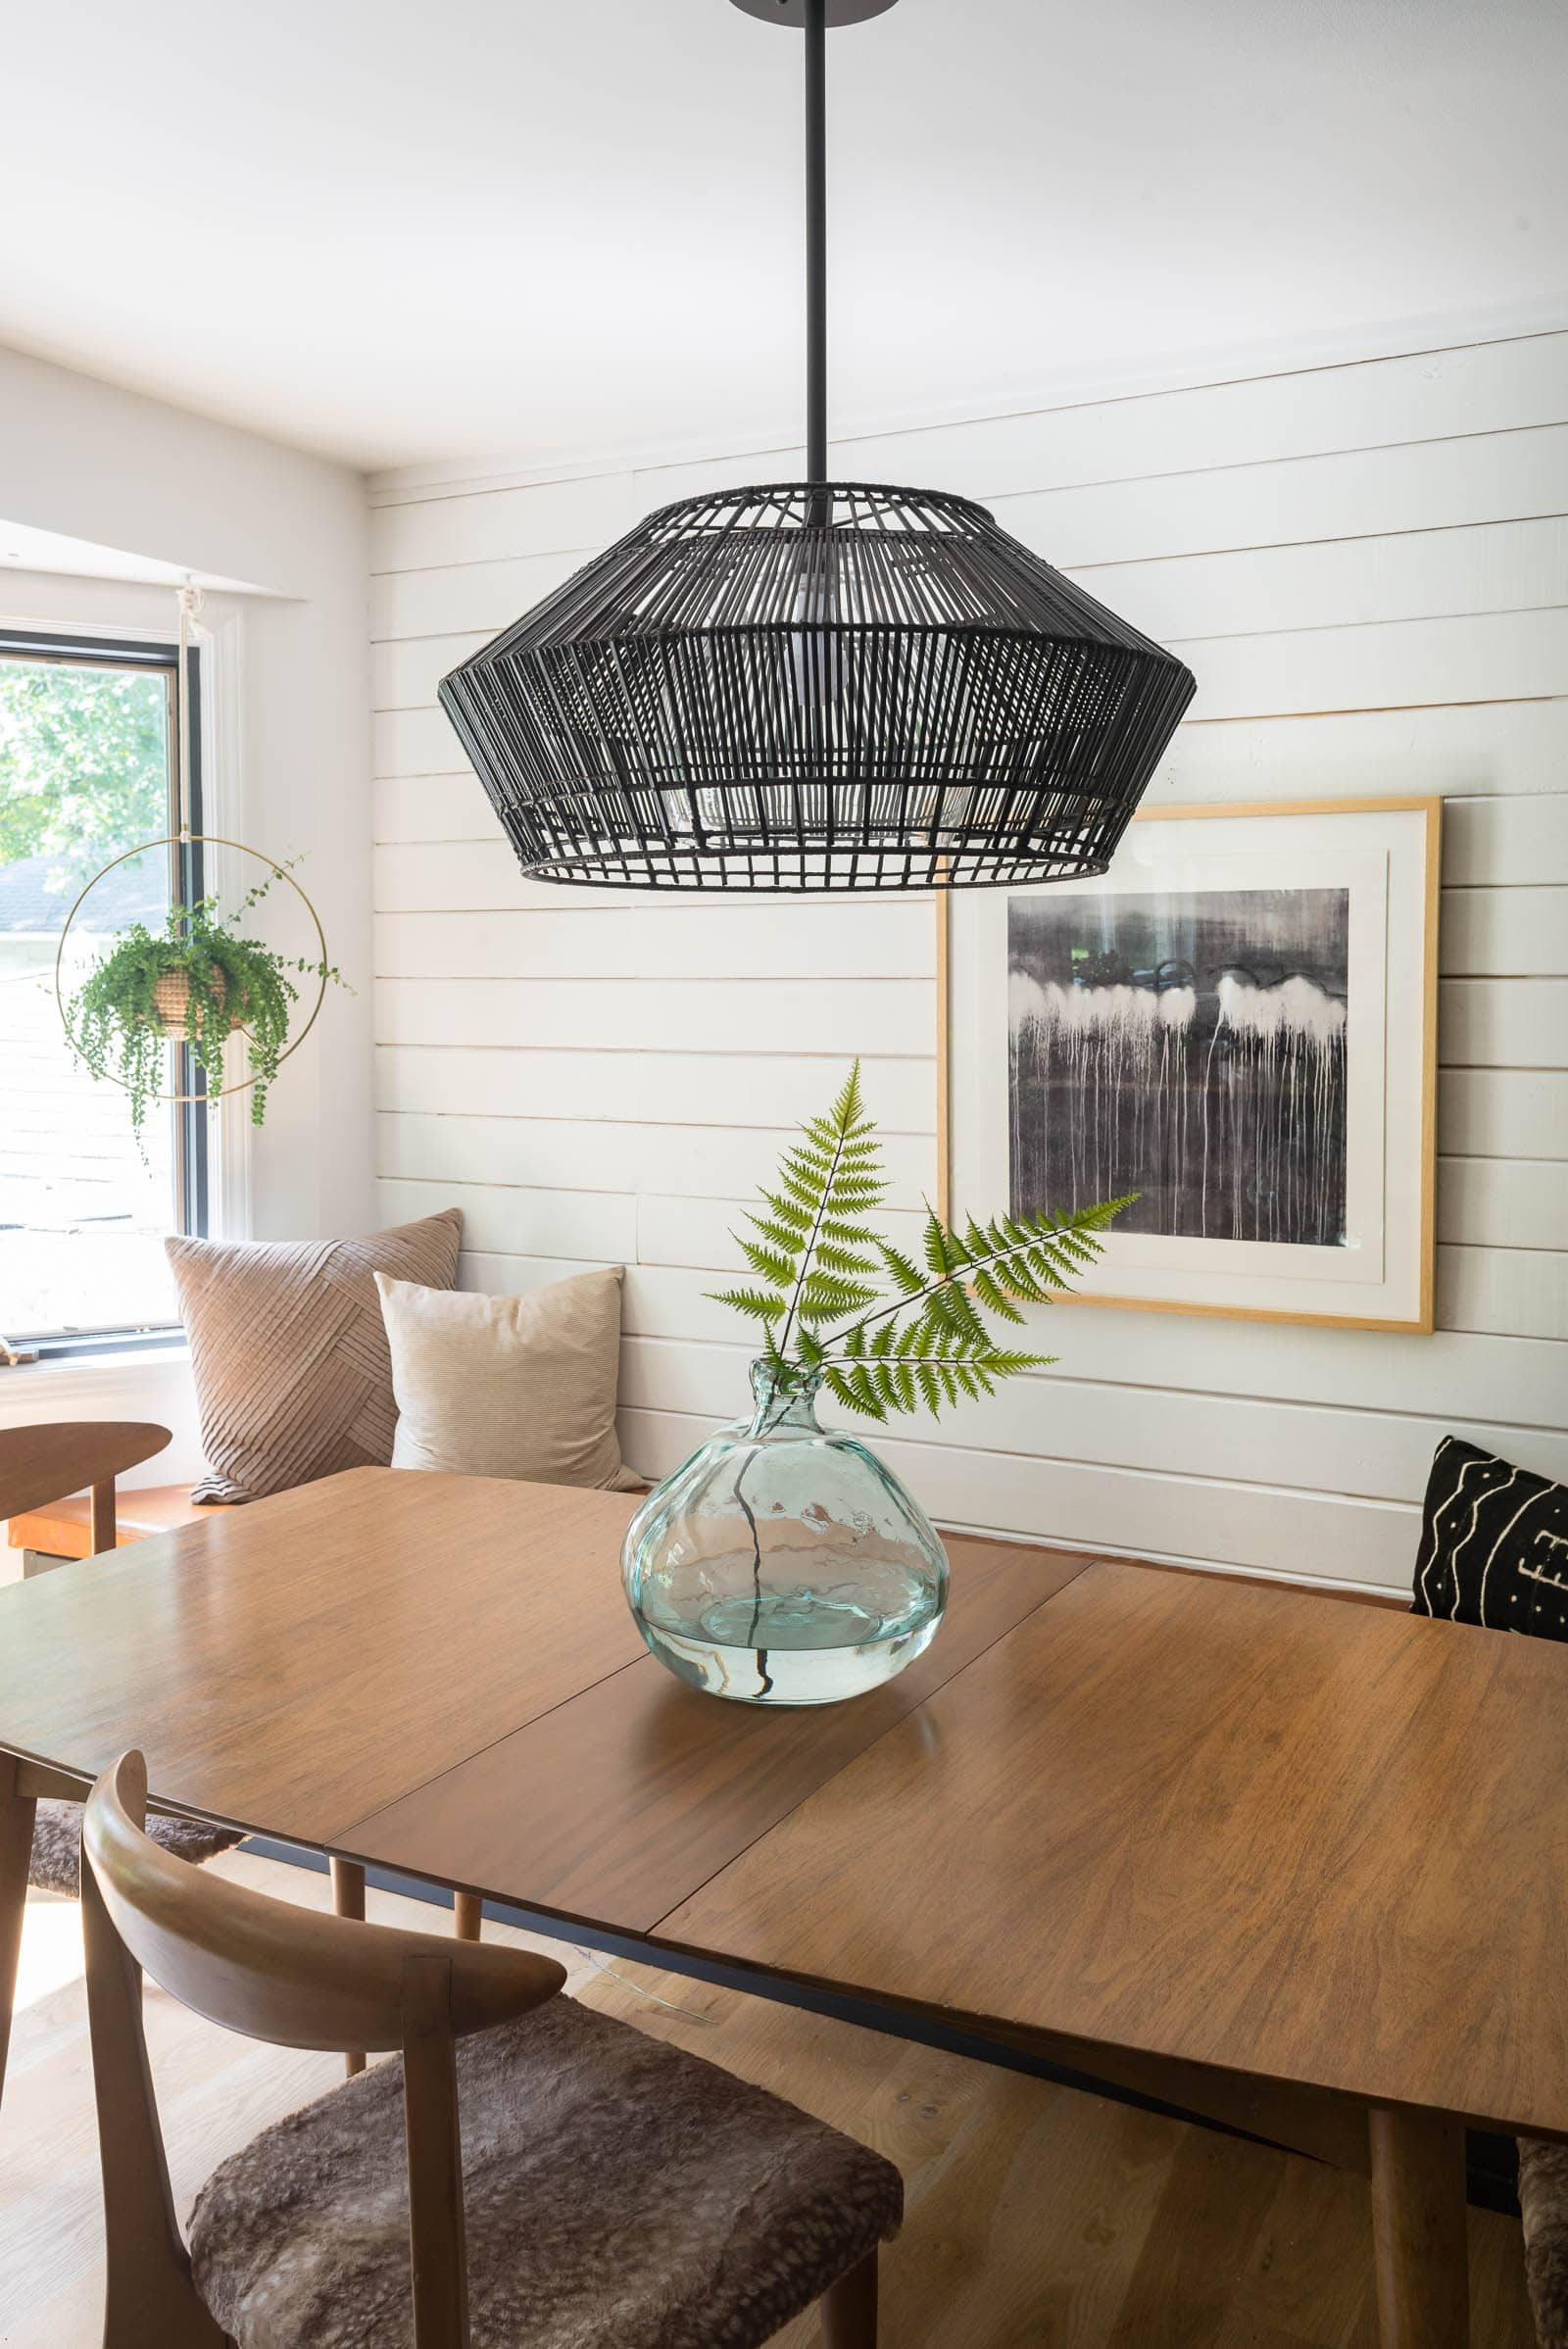 woven light above table